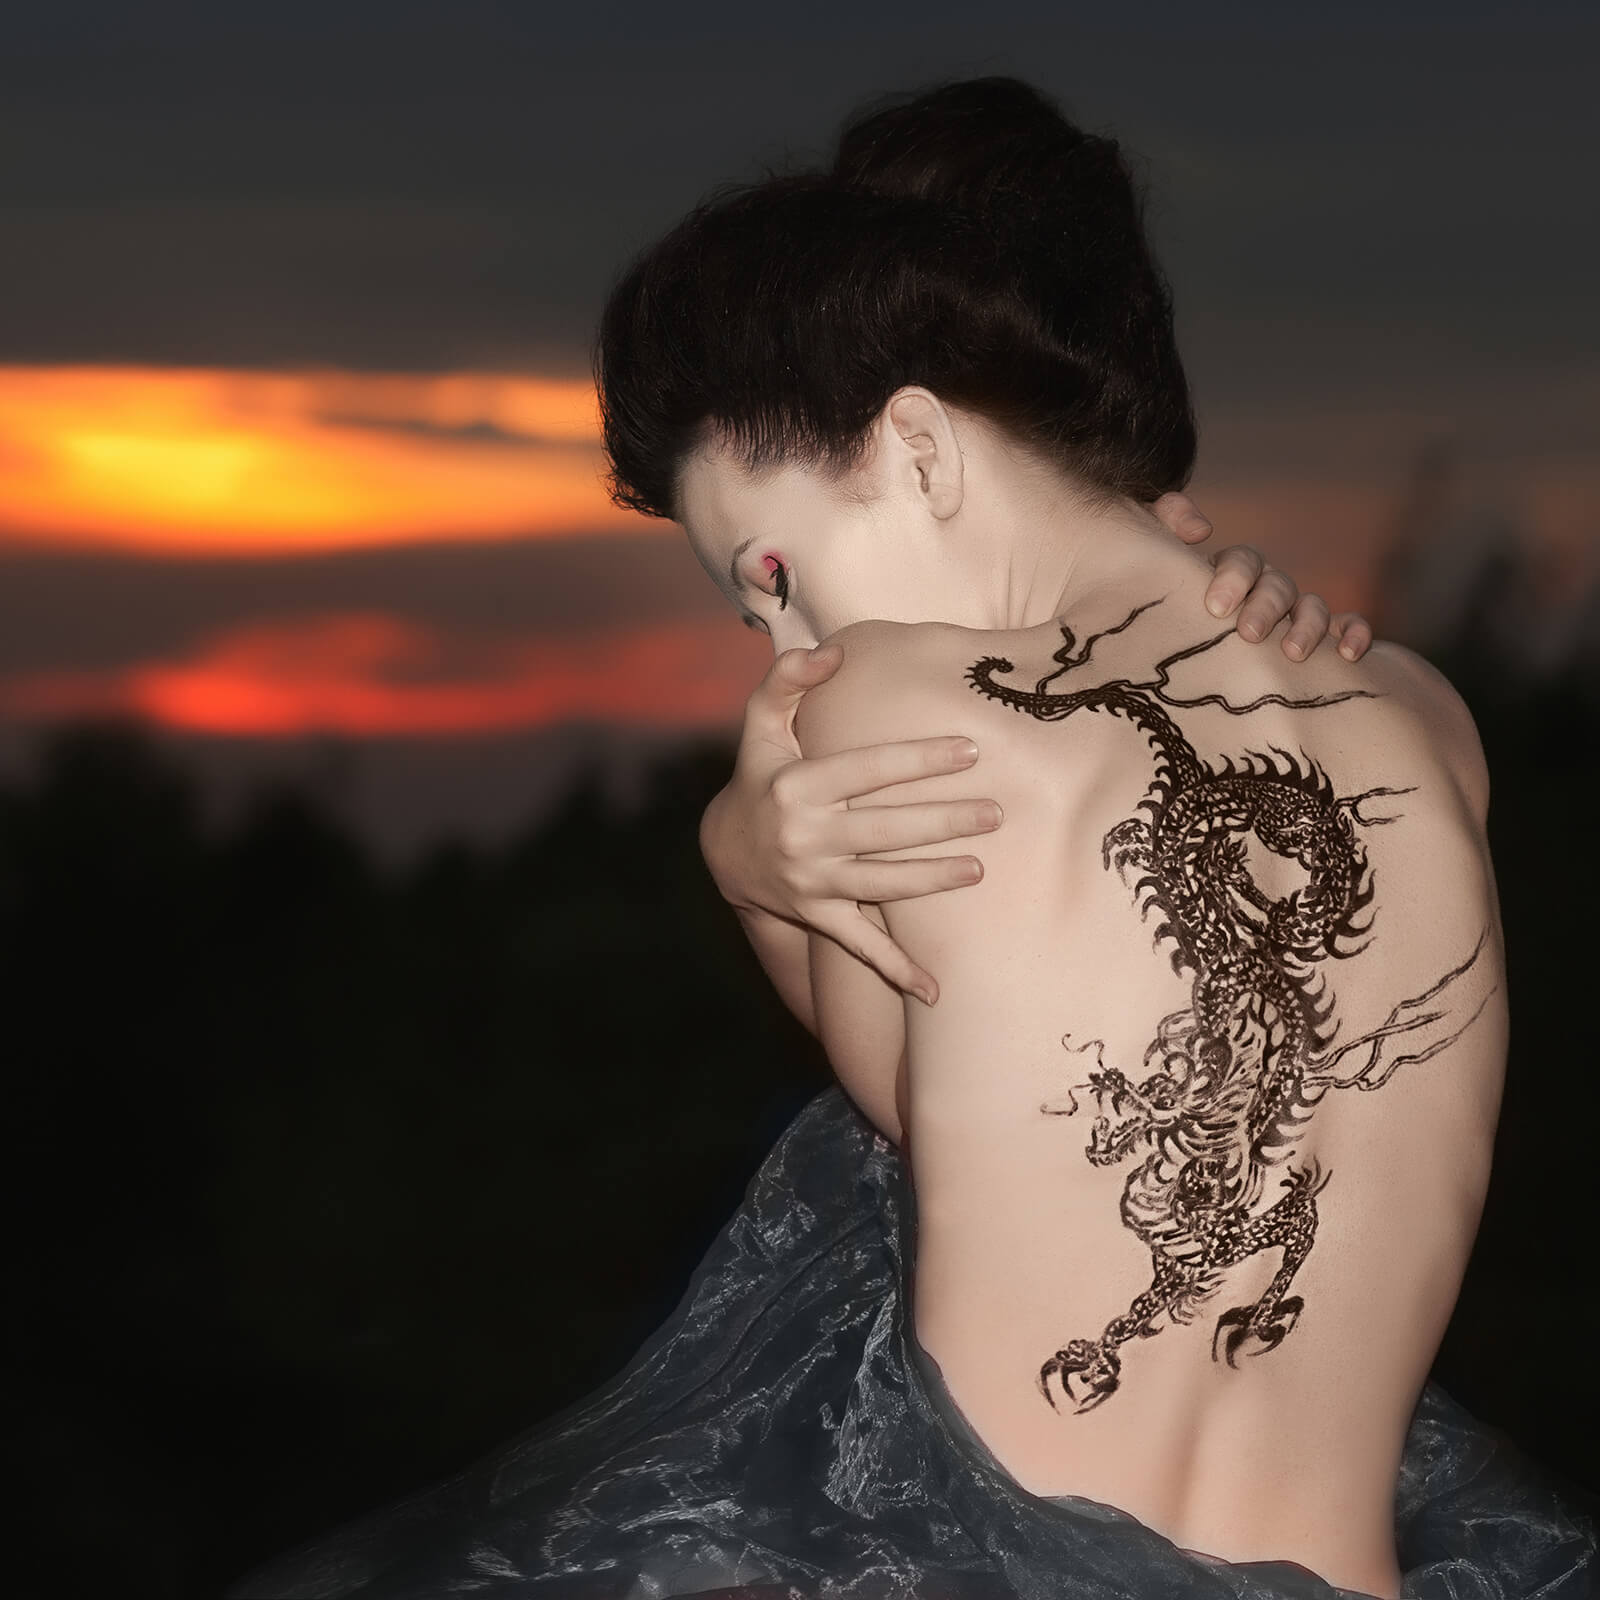 The Girl With The Dragon Tattoo Movie Tattoo